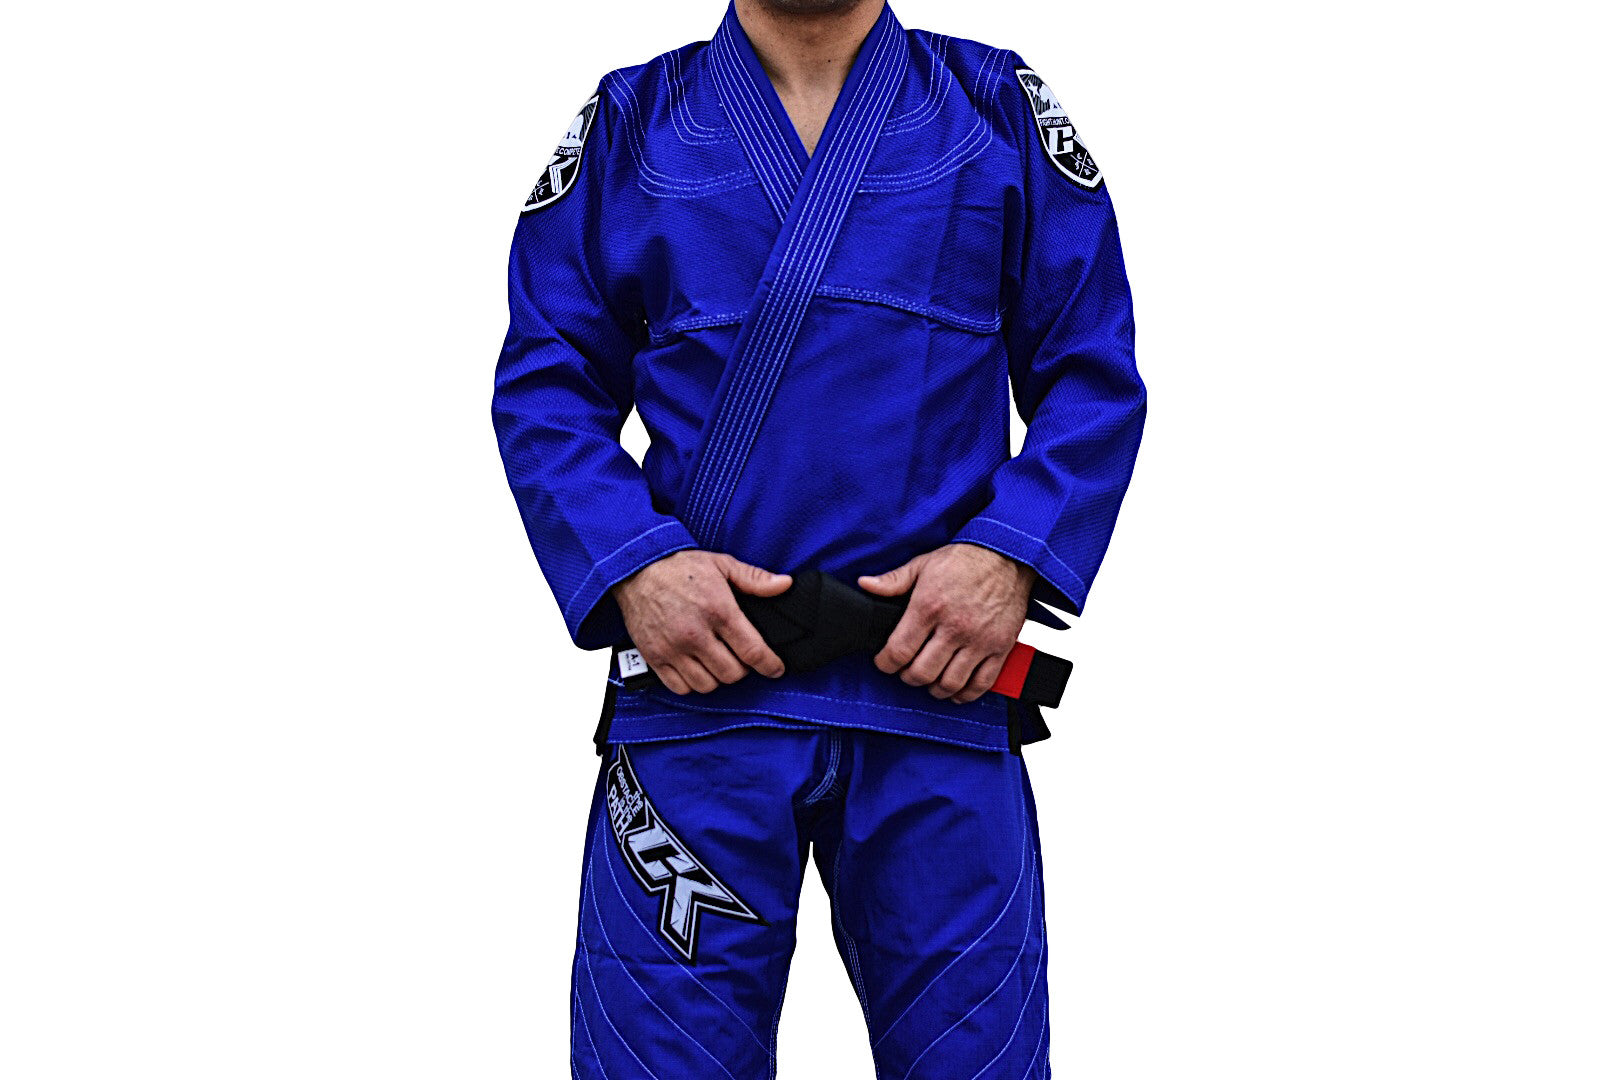 Contract Killer Freshman Jiu Jitsu Gi - Blue